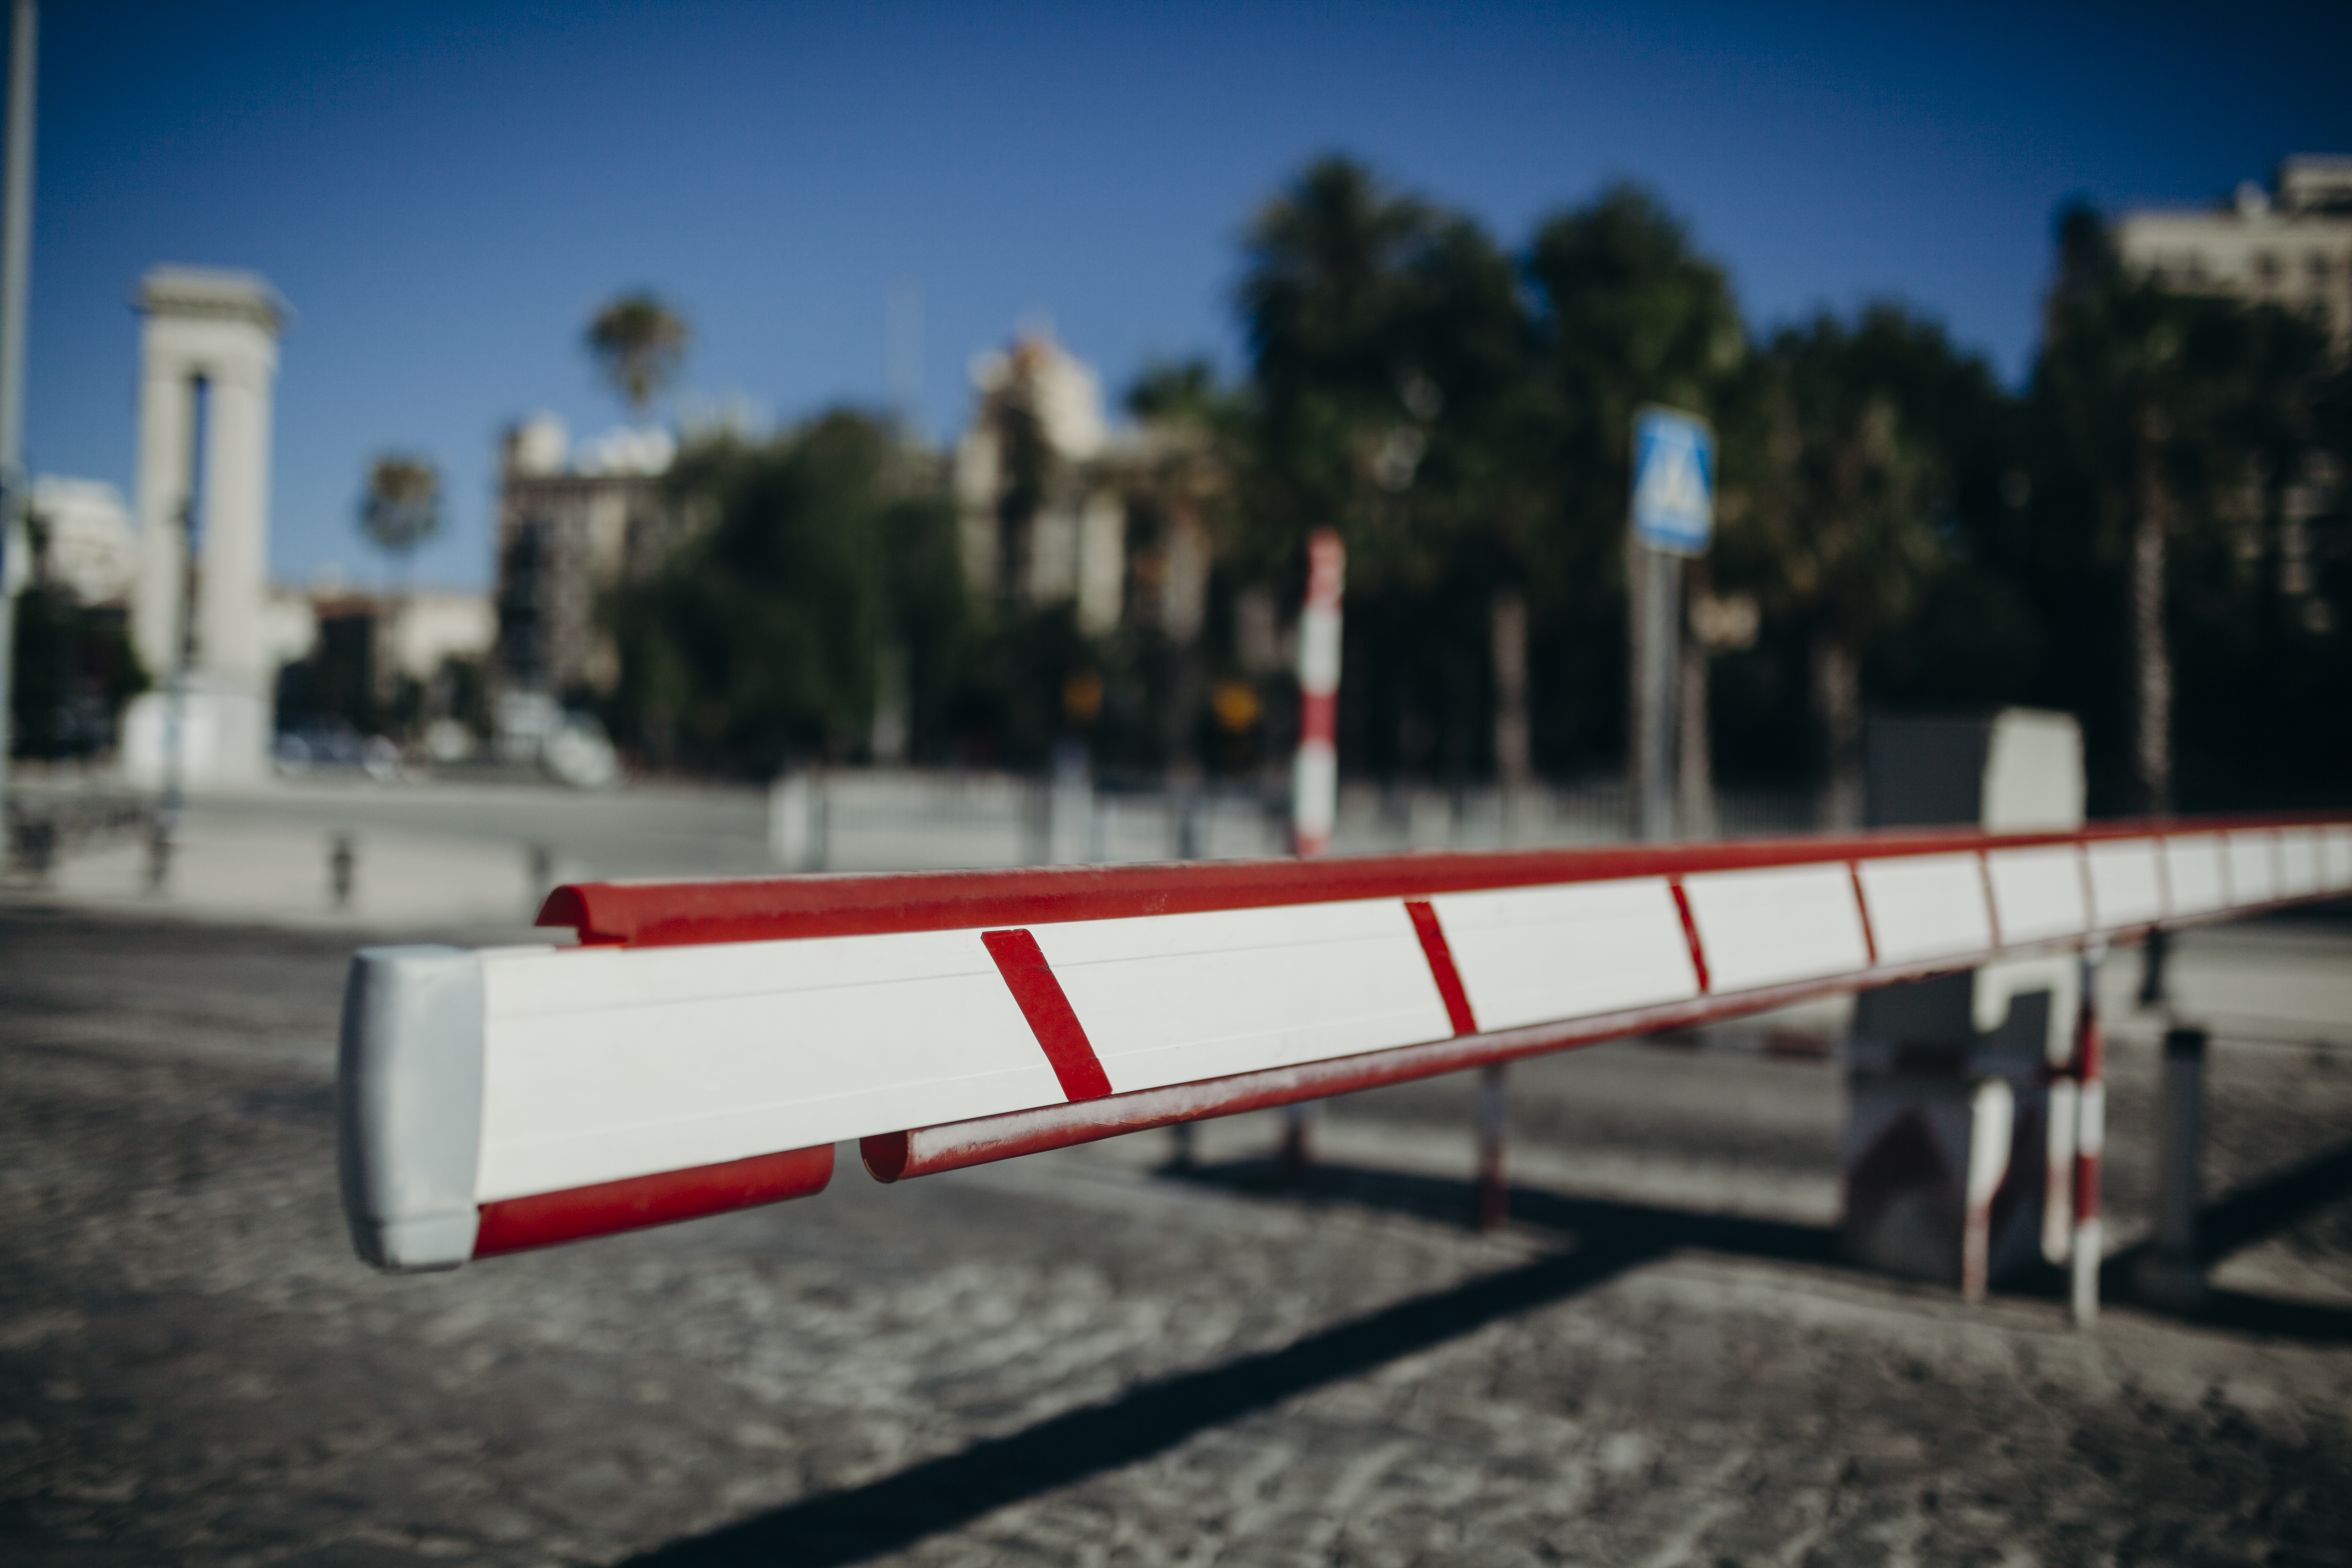 Vehicle access boom barrier